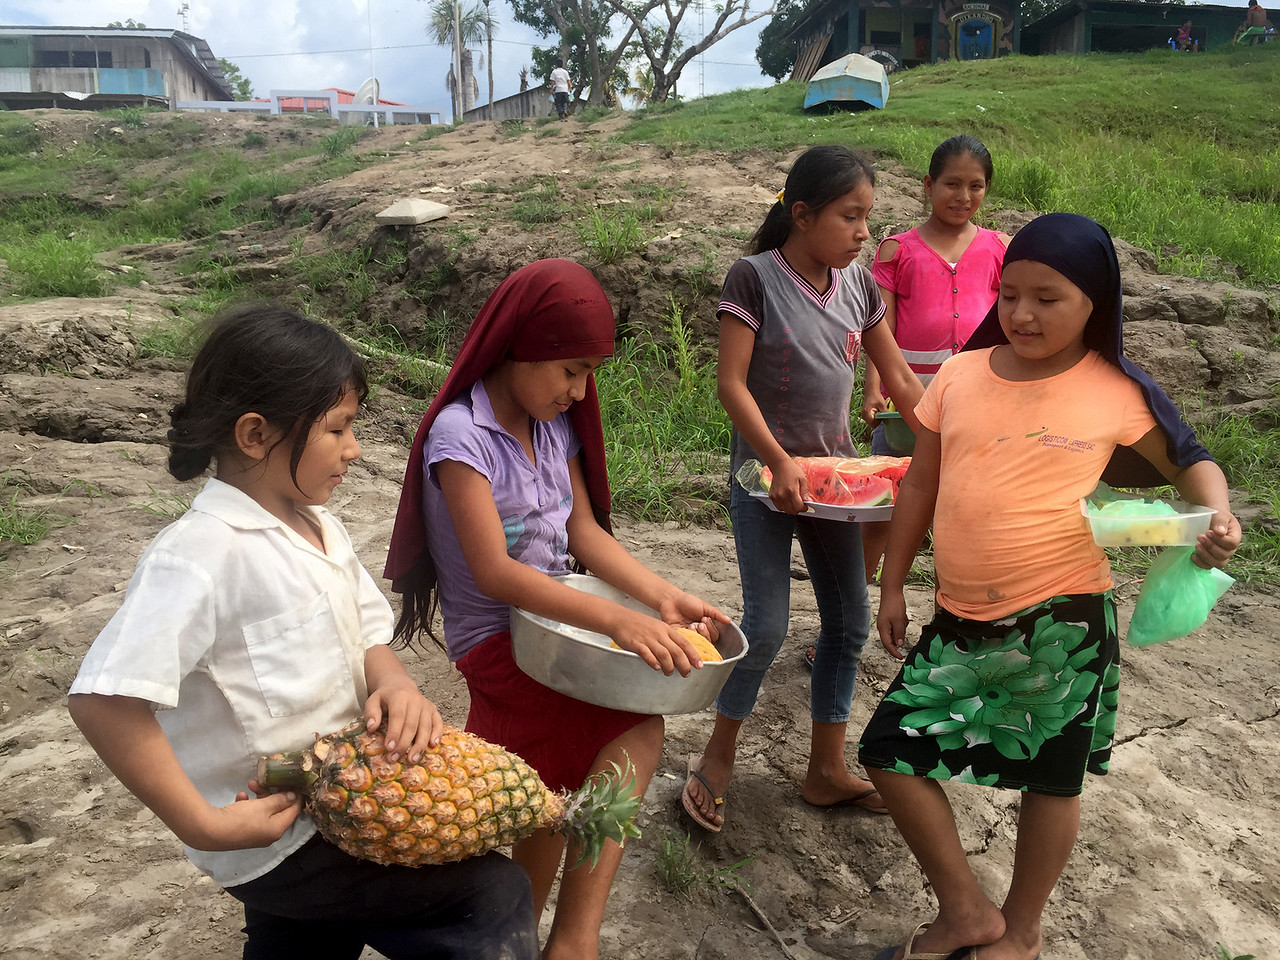 Little girls selling fruits on the boat from Iquitos to the border town of Peru in the Amazon rainforest